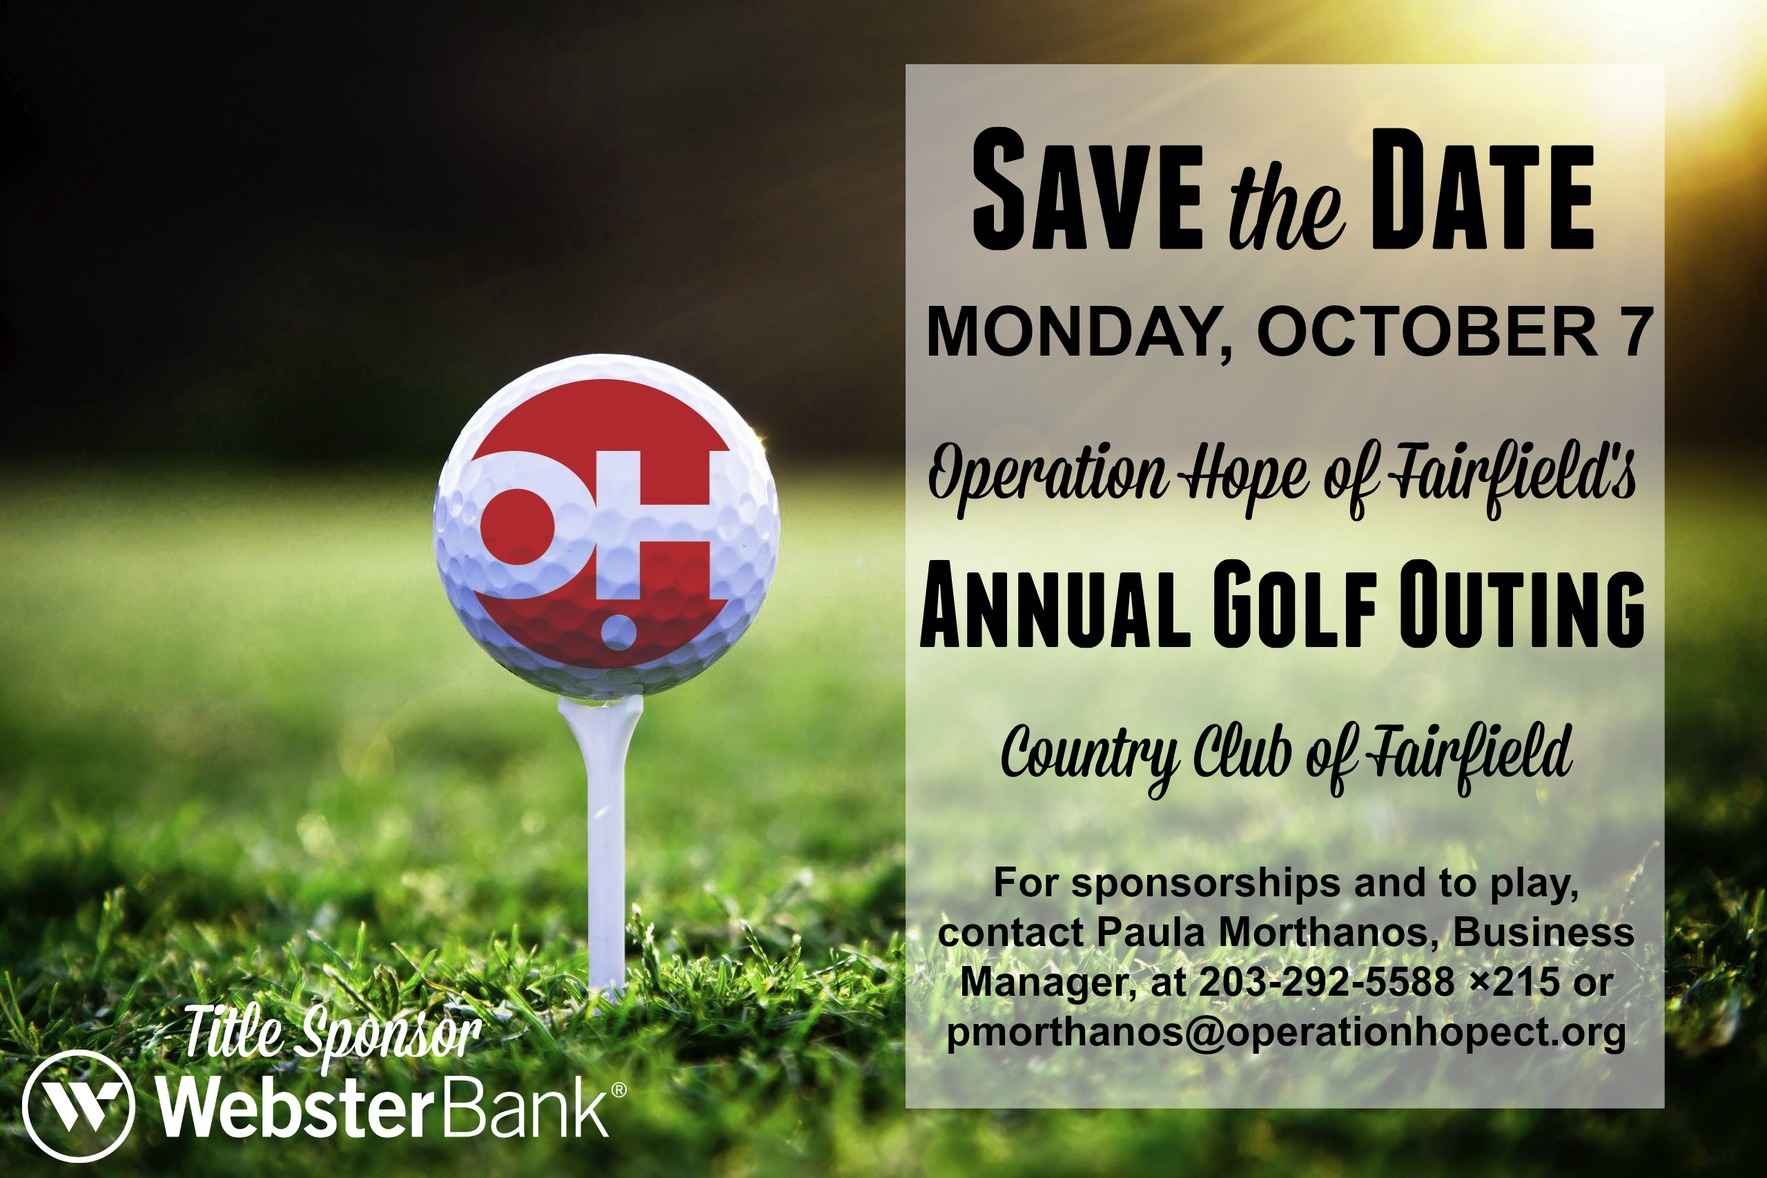 Operation Hope Annual Golf Outing image